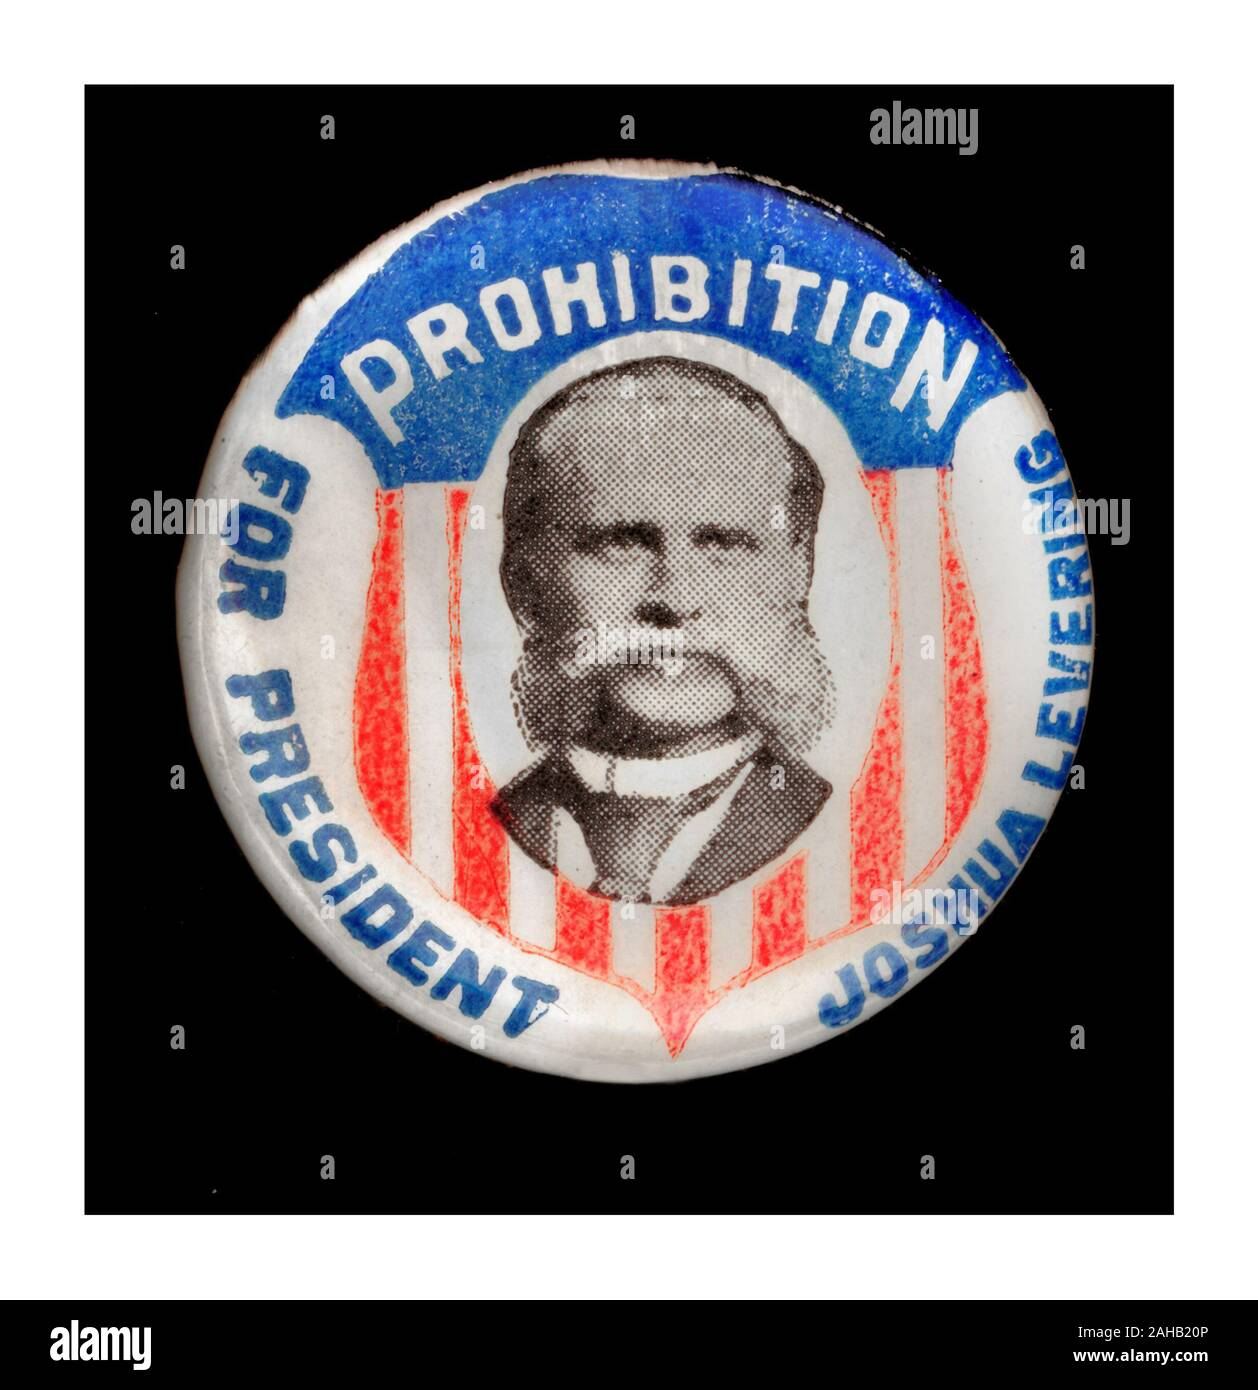 Vintage 1896 PROHIBITION CAMPAIGN LAPEL BADGE Joshua Levering (September 12, 1845 - October 6, 1935)  a prominent Baptist and a candidate for president of the United States in 1896. He was a passionate supporter of prohibition Stock Photo